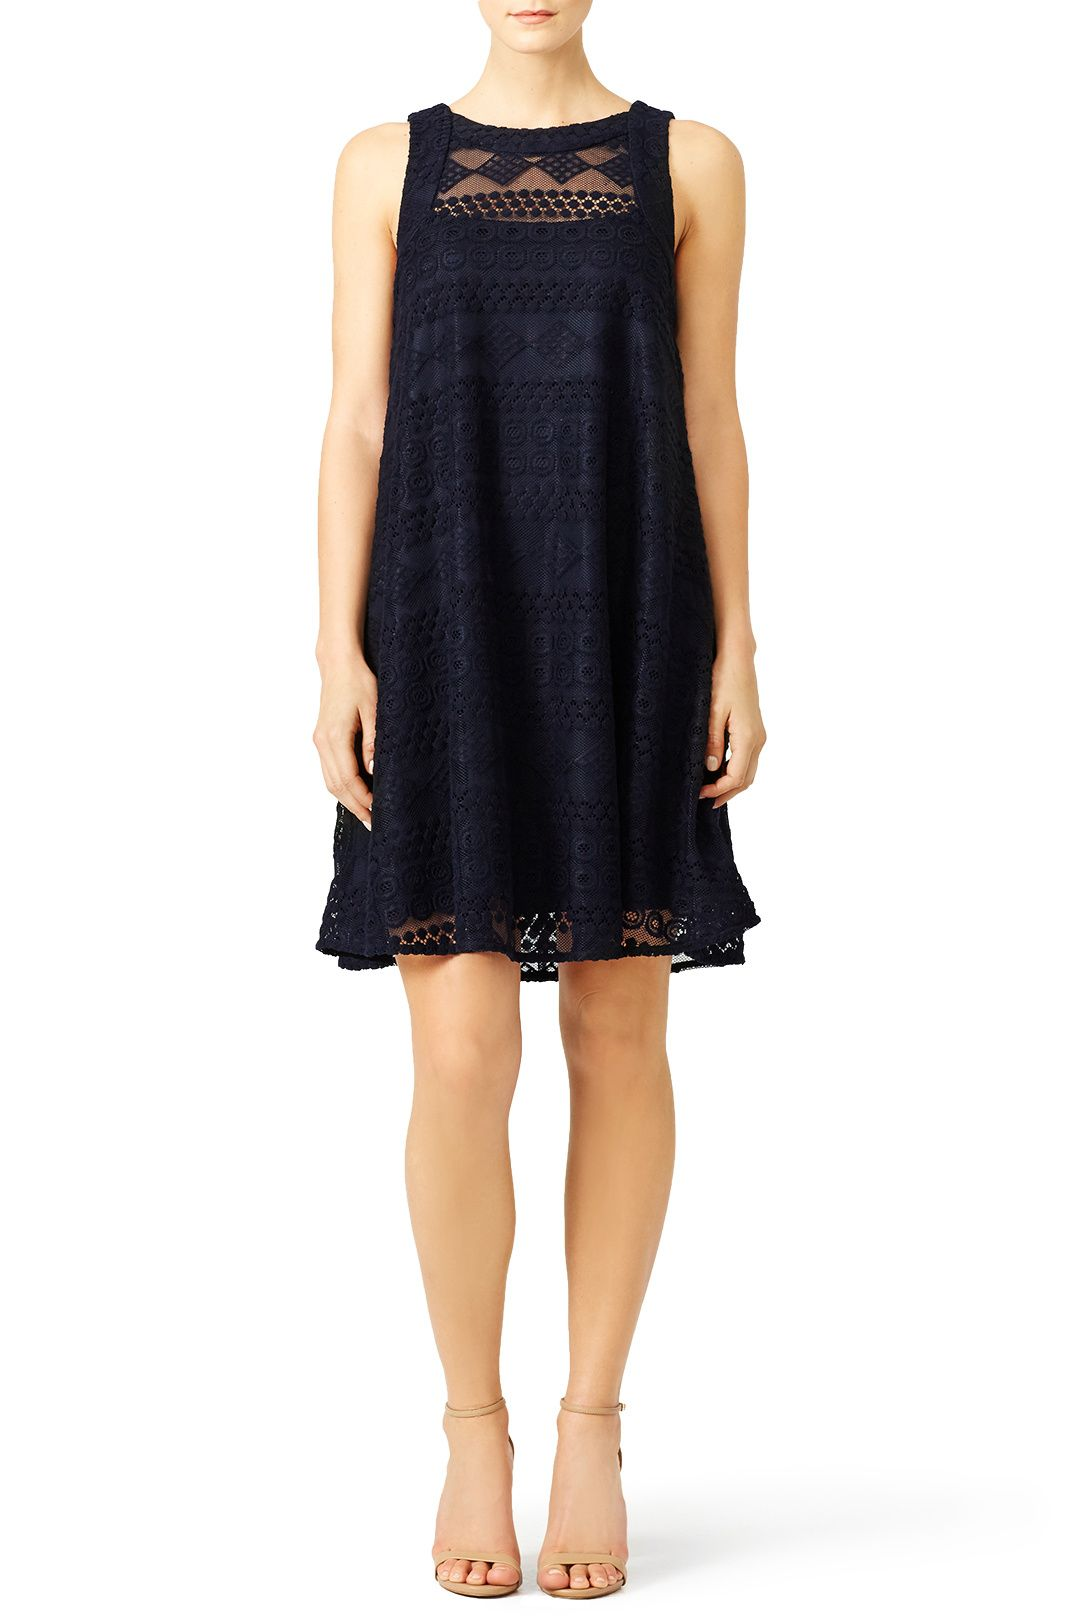 Rent Navy Embroidered Lace Shift by Slate & Willow for $50 only at Rent the Runway.